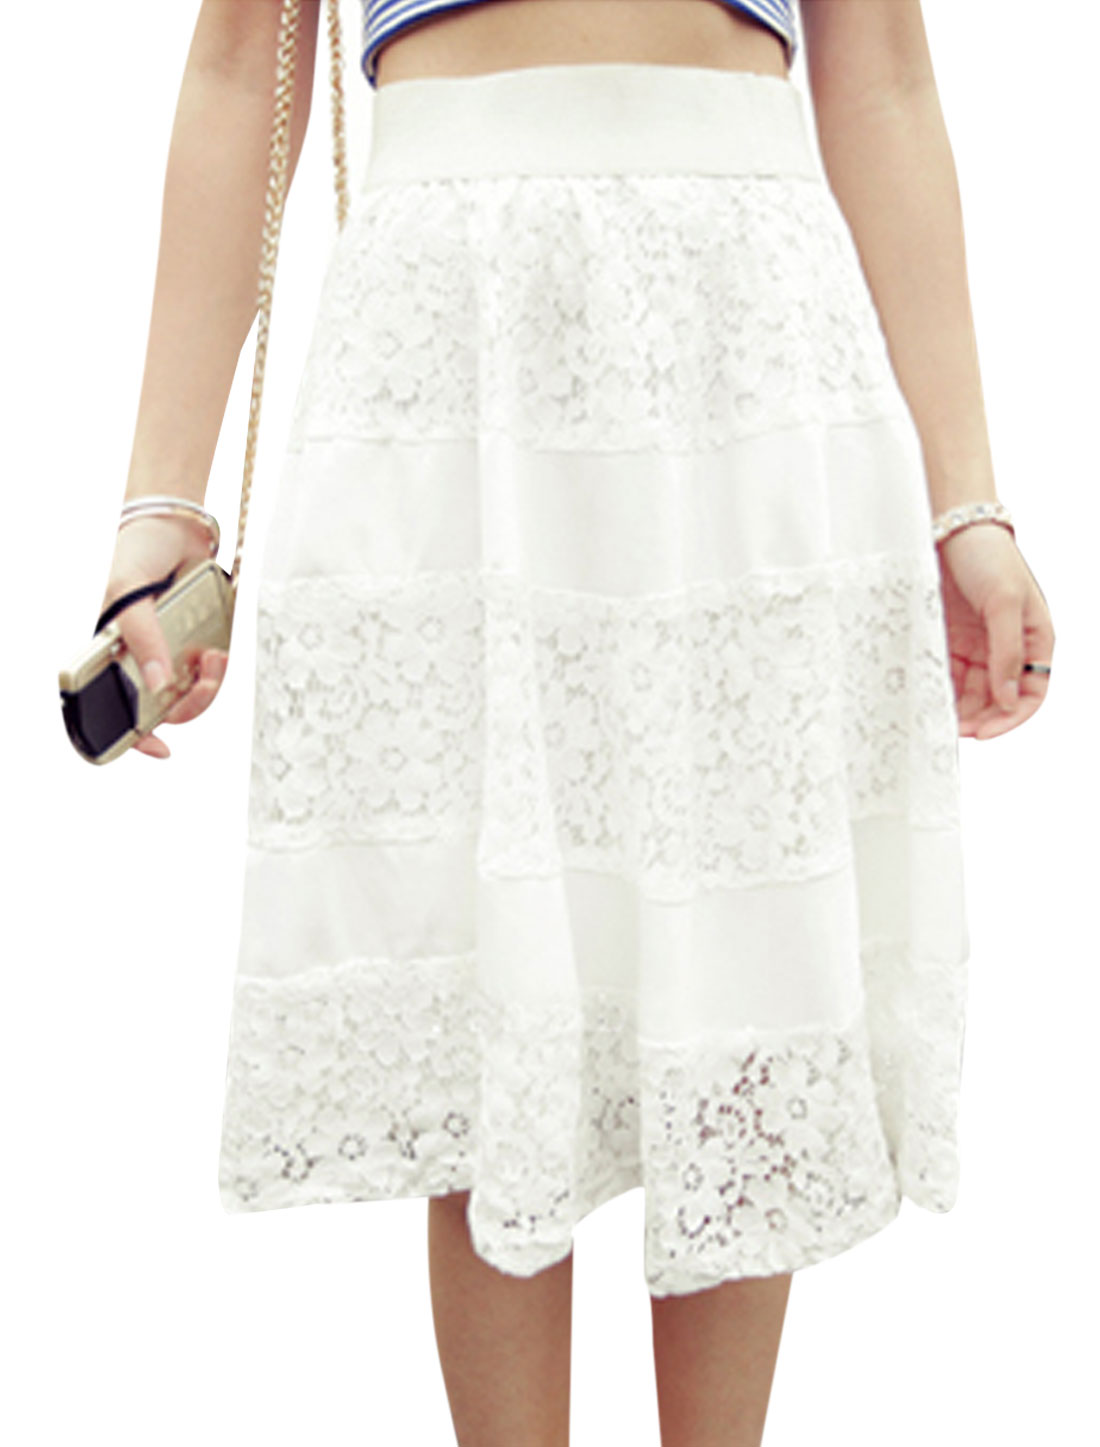 Women Elastic Waist Lace Panel Knee-Length Skirt White S